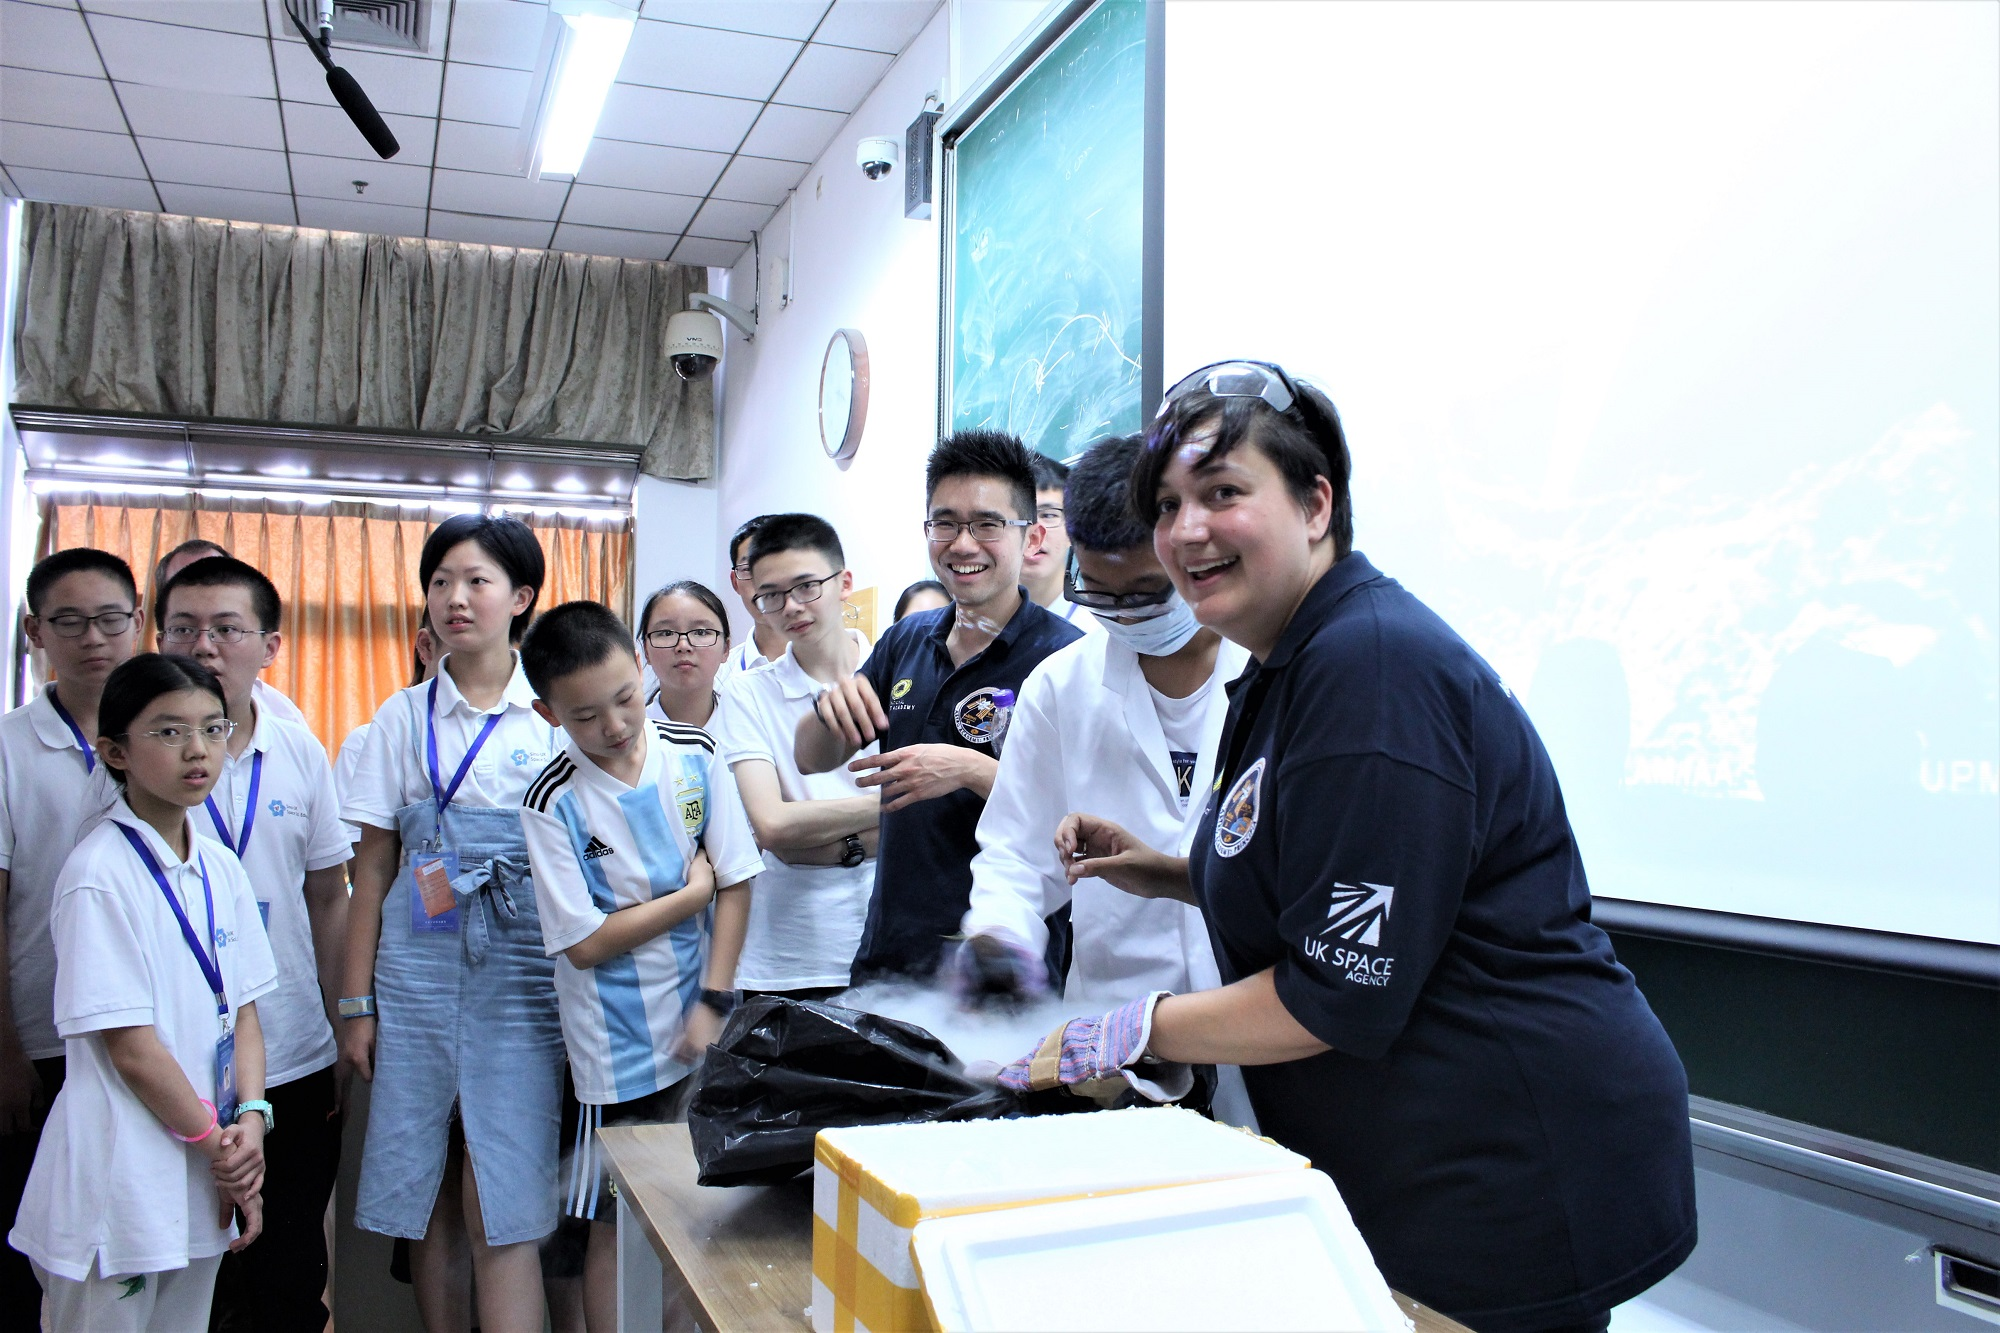 Beijing Space Summer School July - making comets